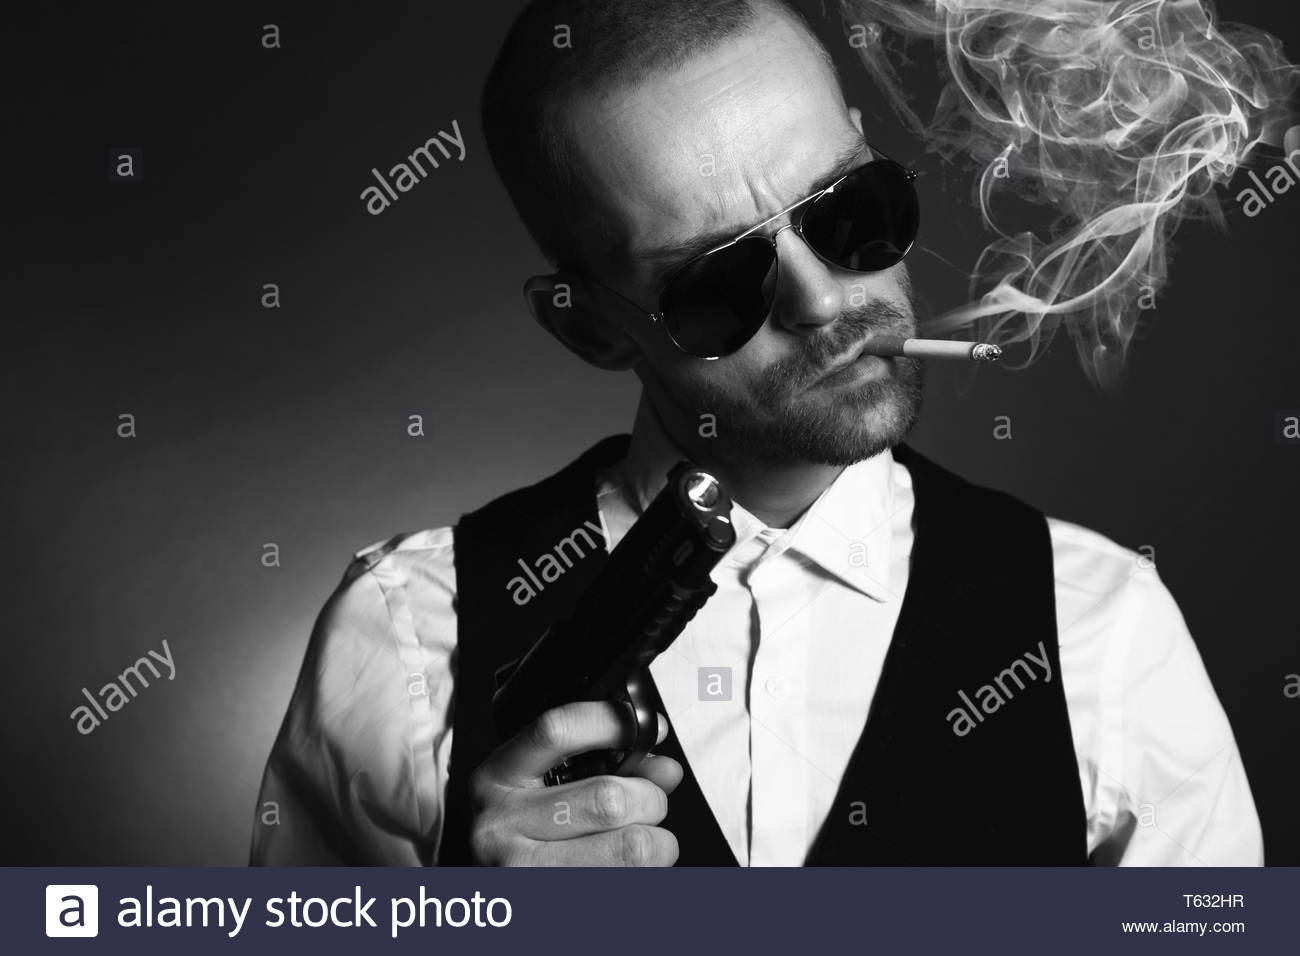 Dangerous gangster with gun and cigarette - Stock Image